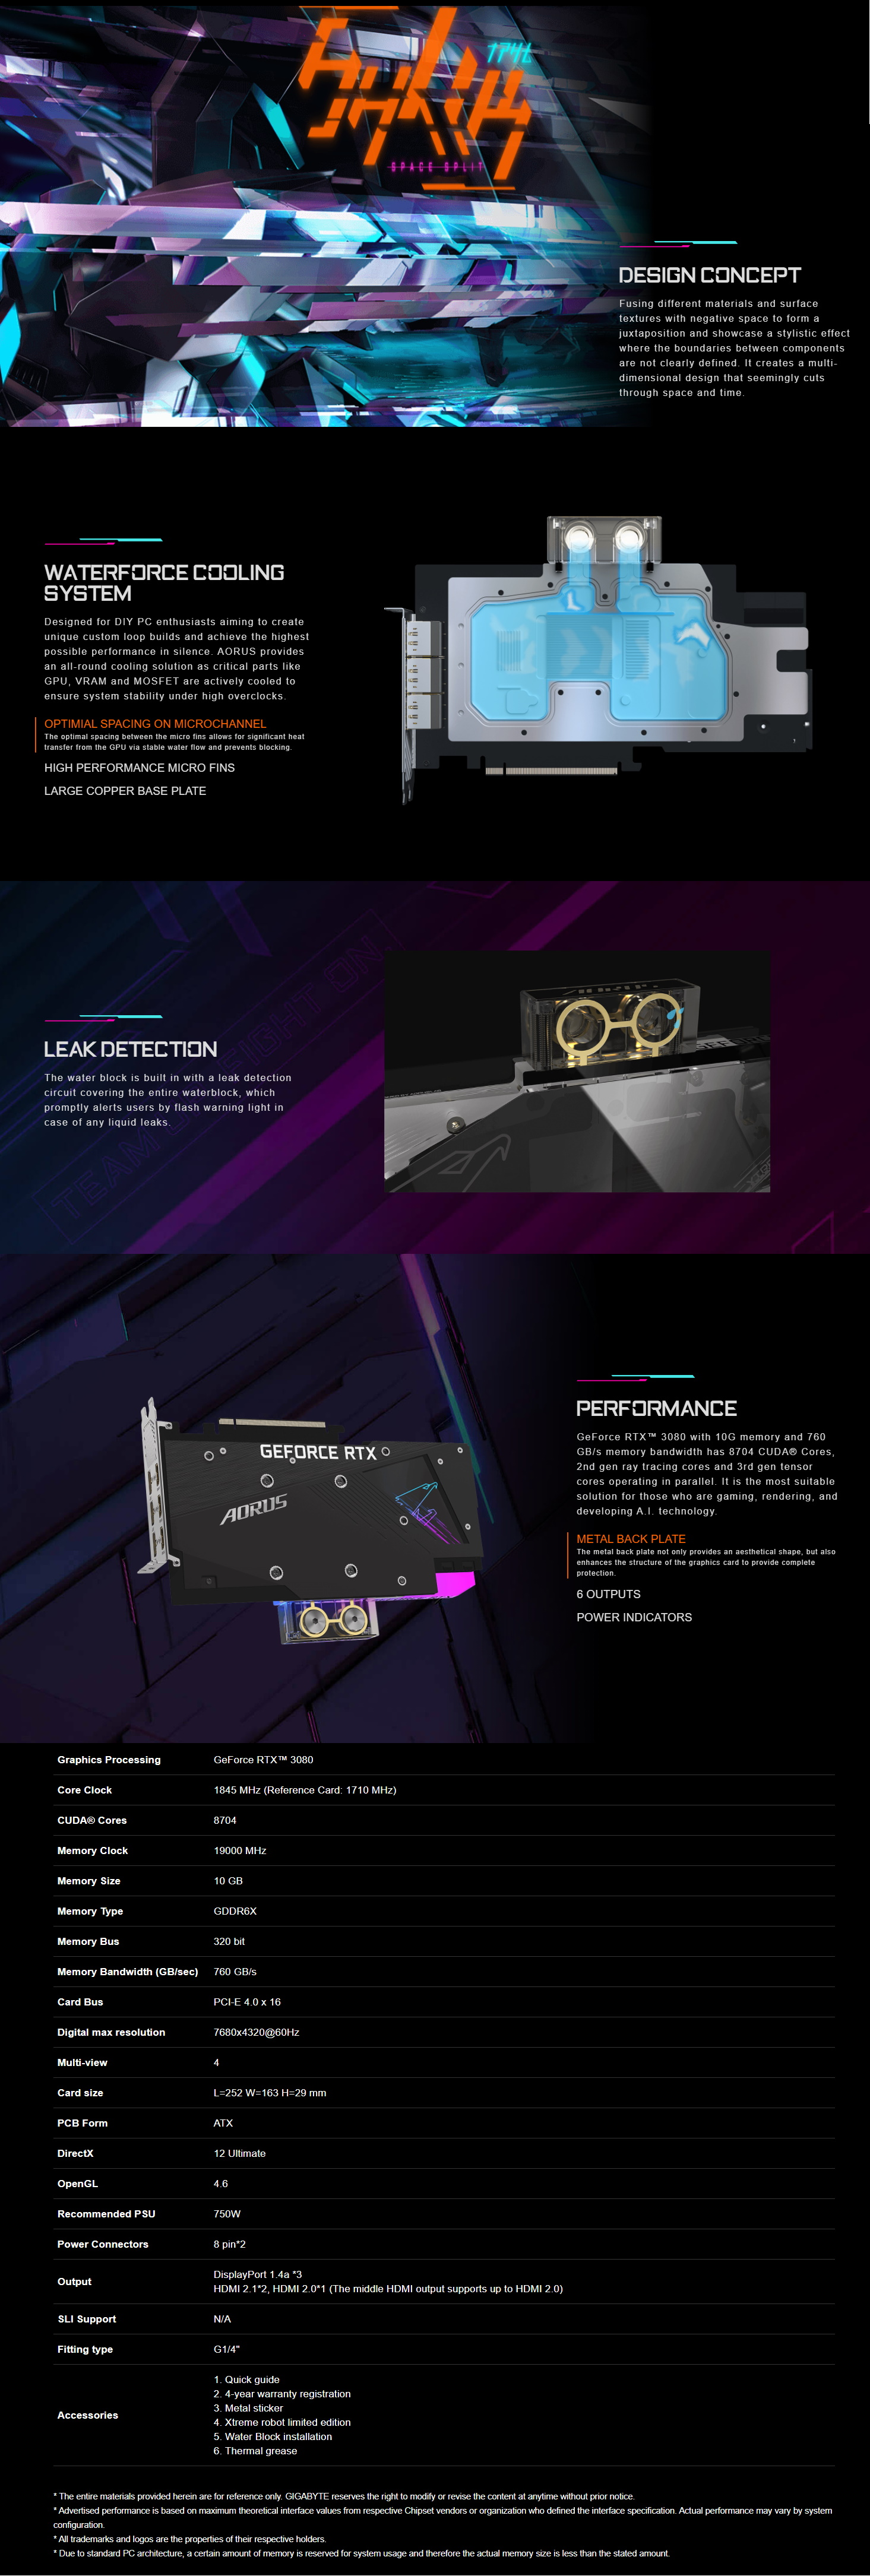 A large marketing image providing additional information about the product Gigabyte GeForce RTX3080 Xtreme Waterforce WB 10GB GDDR6X - Additional alt info not provided